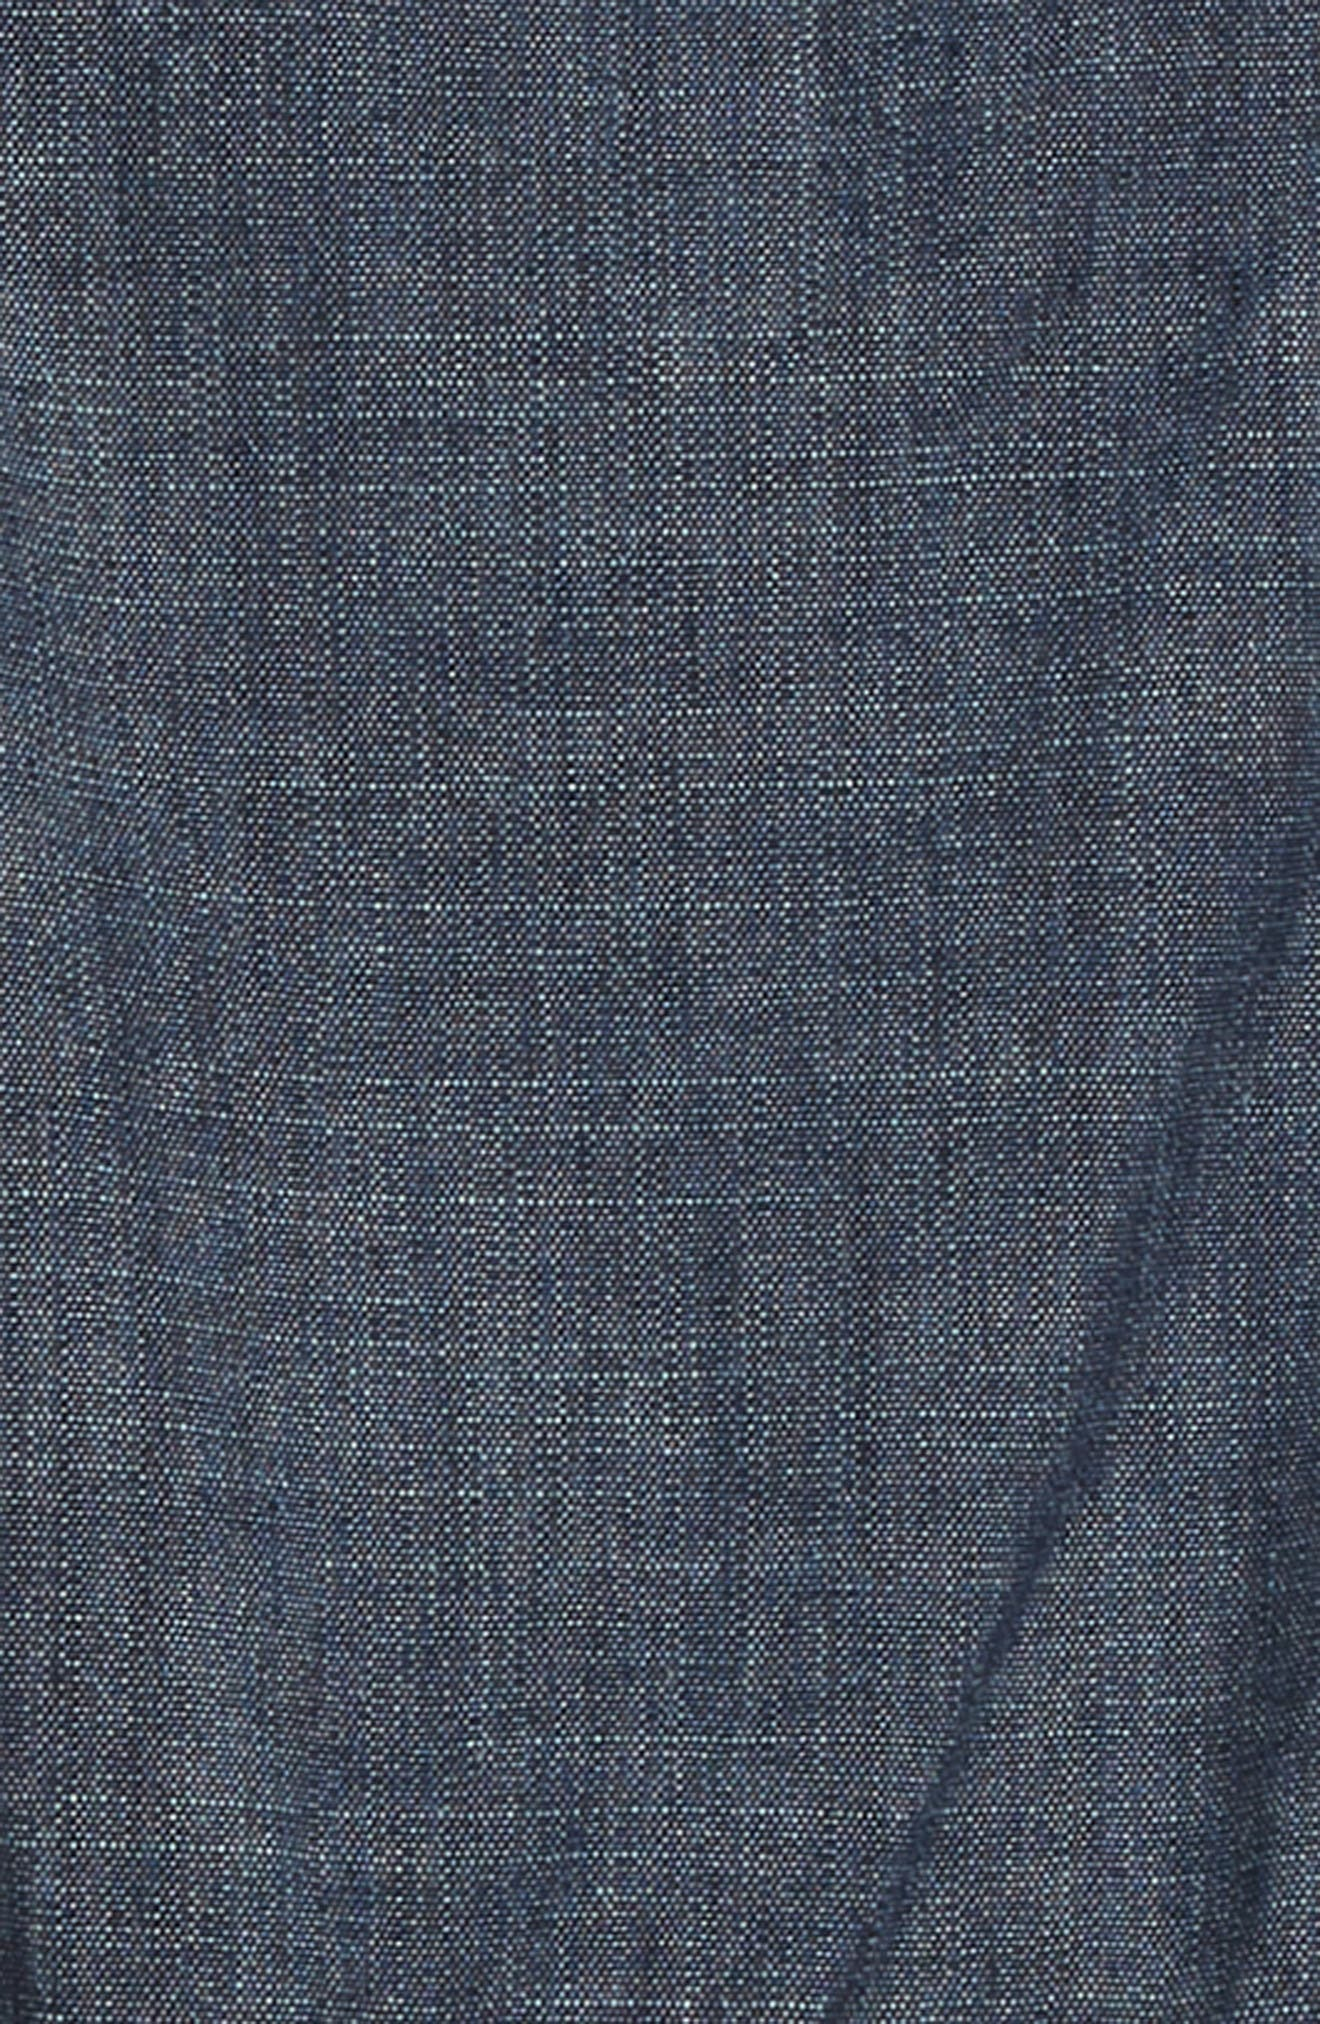 Chambray Jumper,                             Alternate thumbnail 3, color,                             400